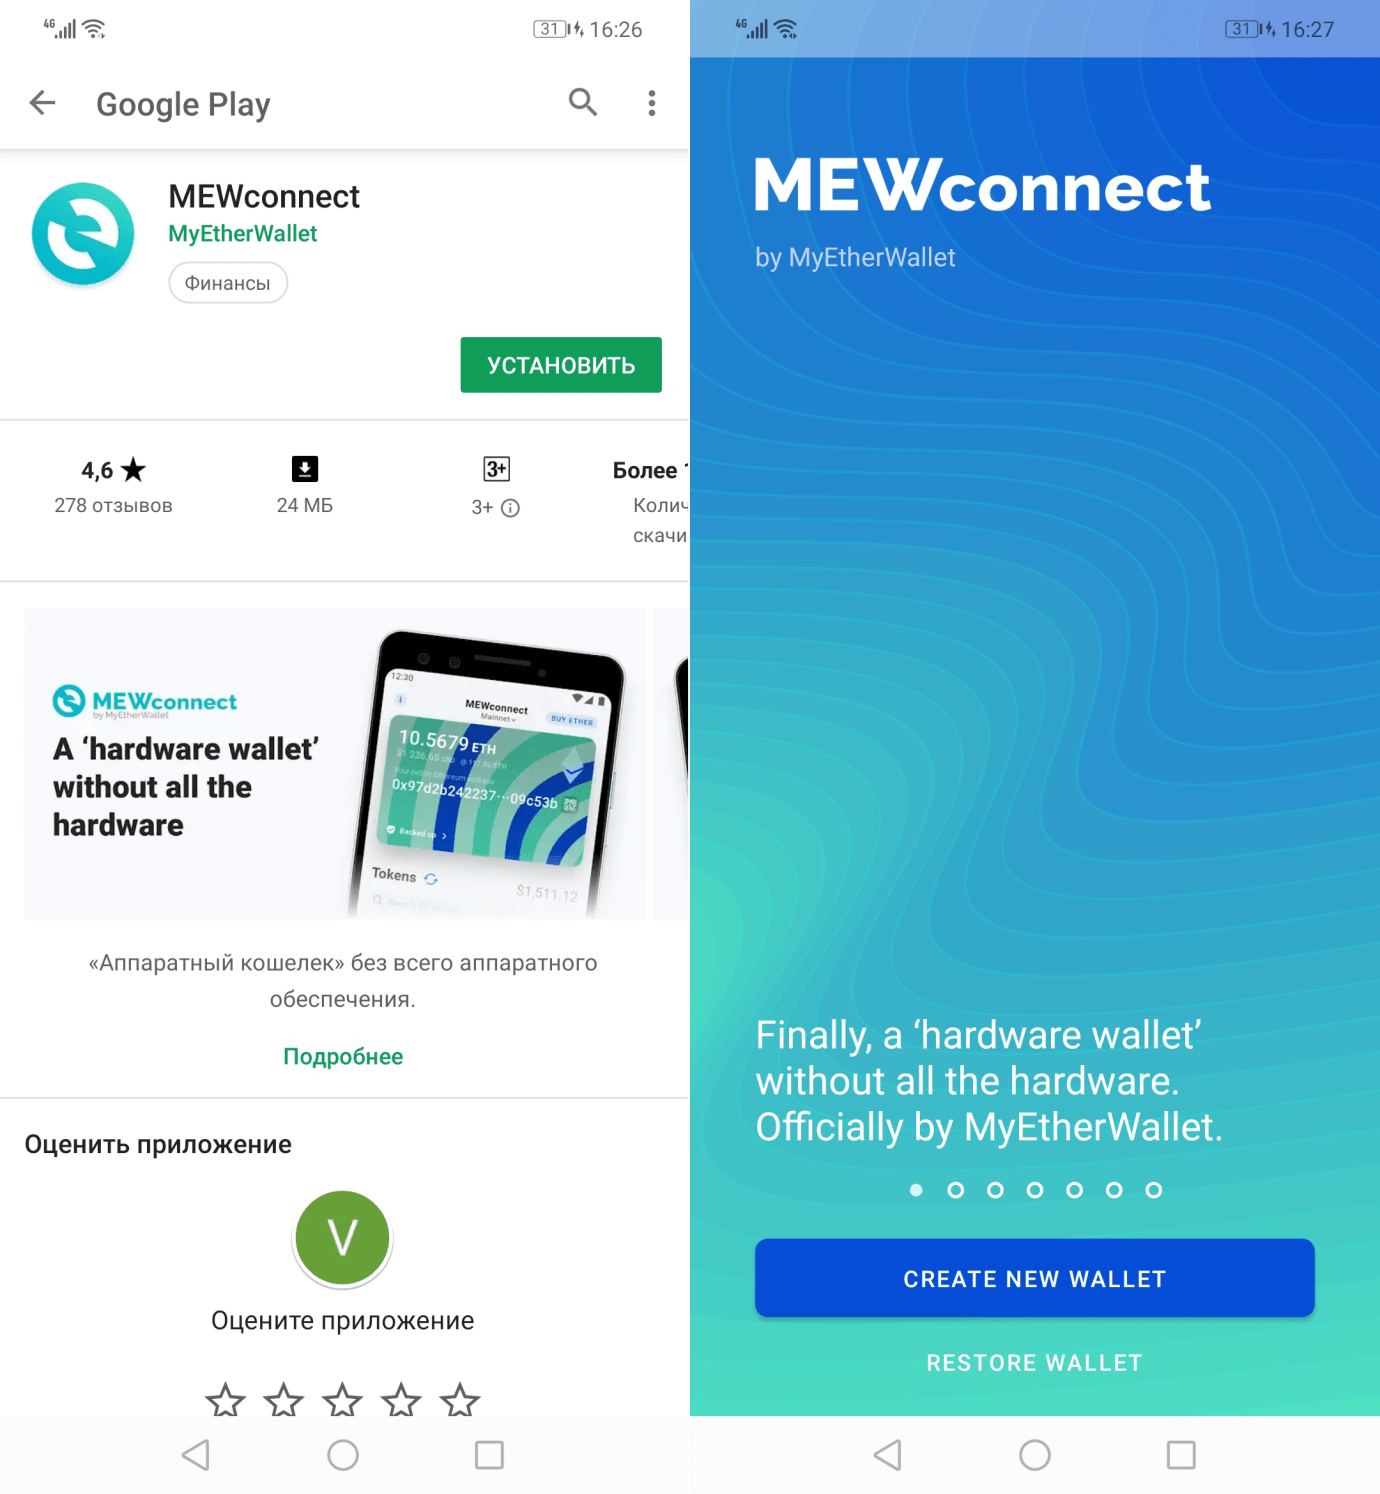 MyEtherWallet 13 - MEWconnect for Android